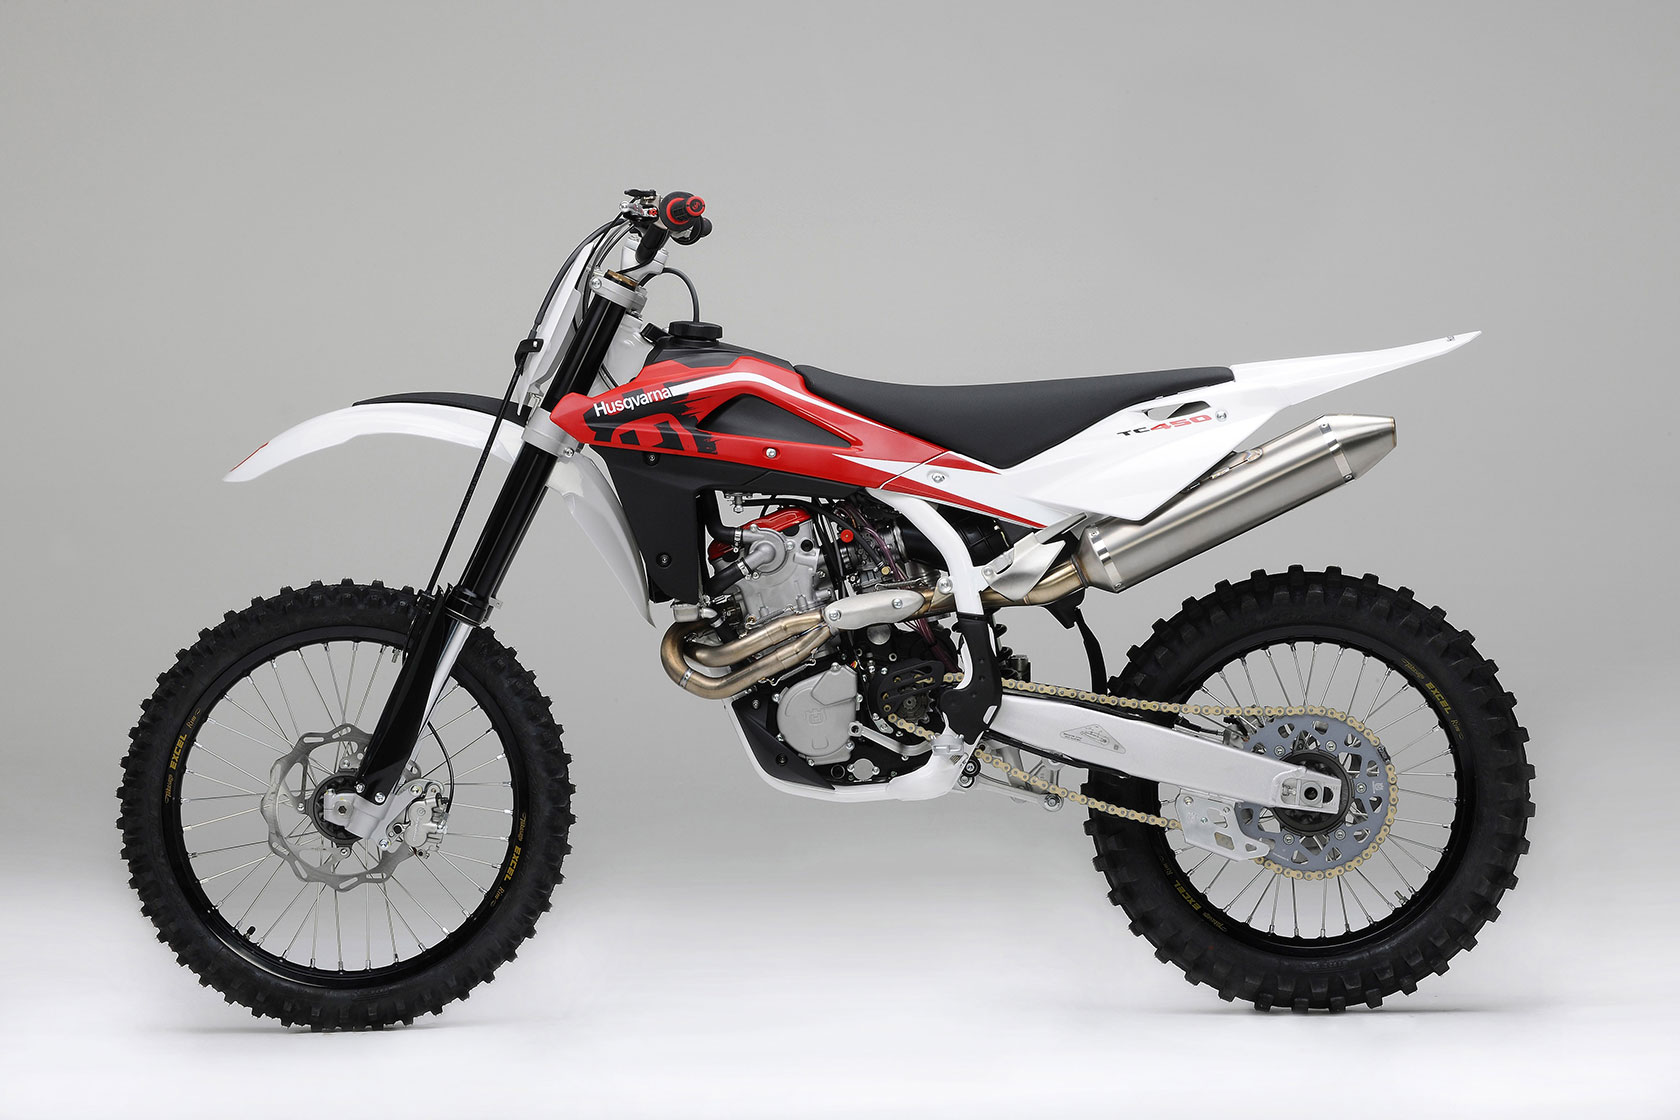 2008 Husqvarna TC 450: Pics, Specs And Information